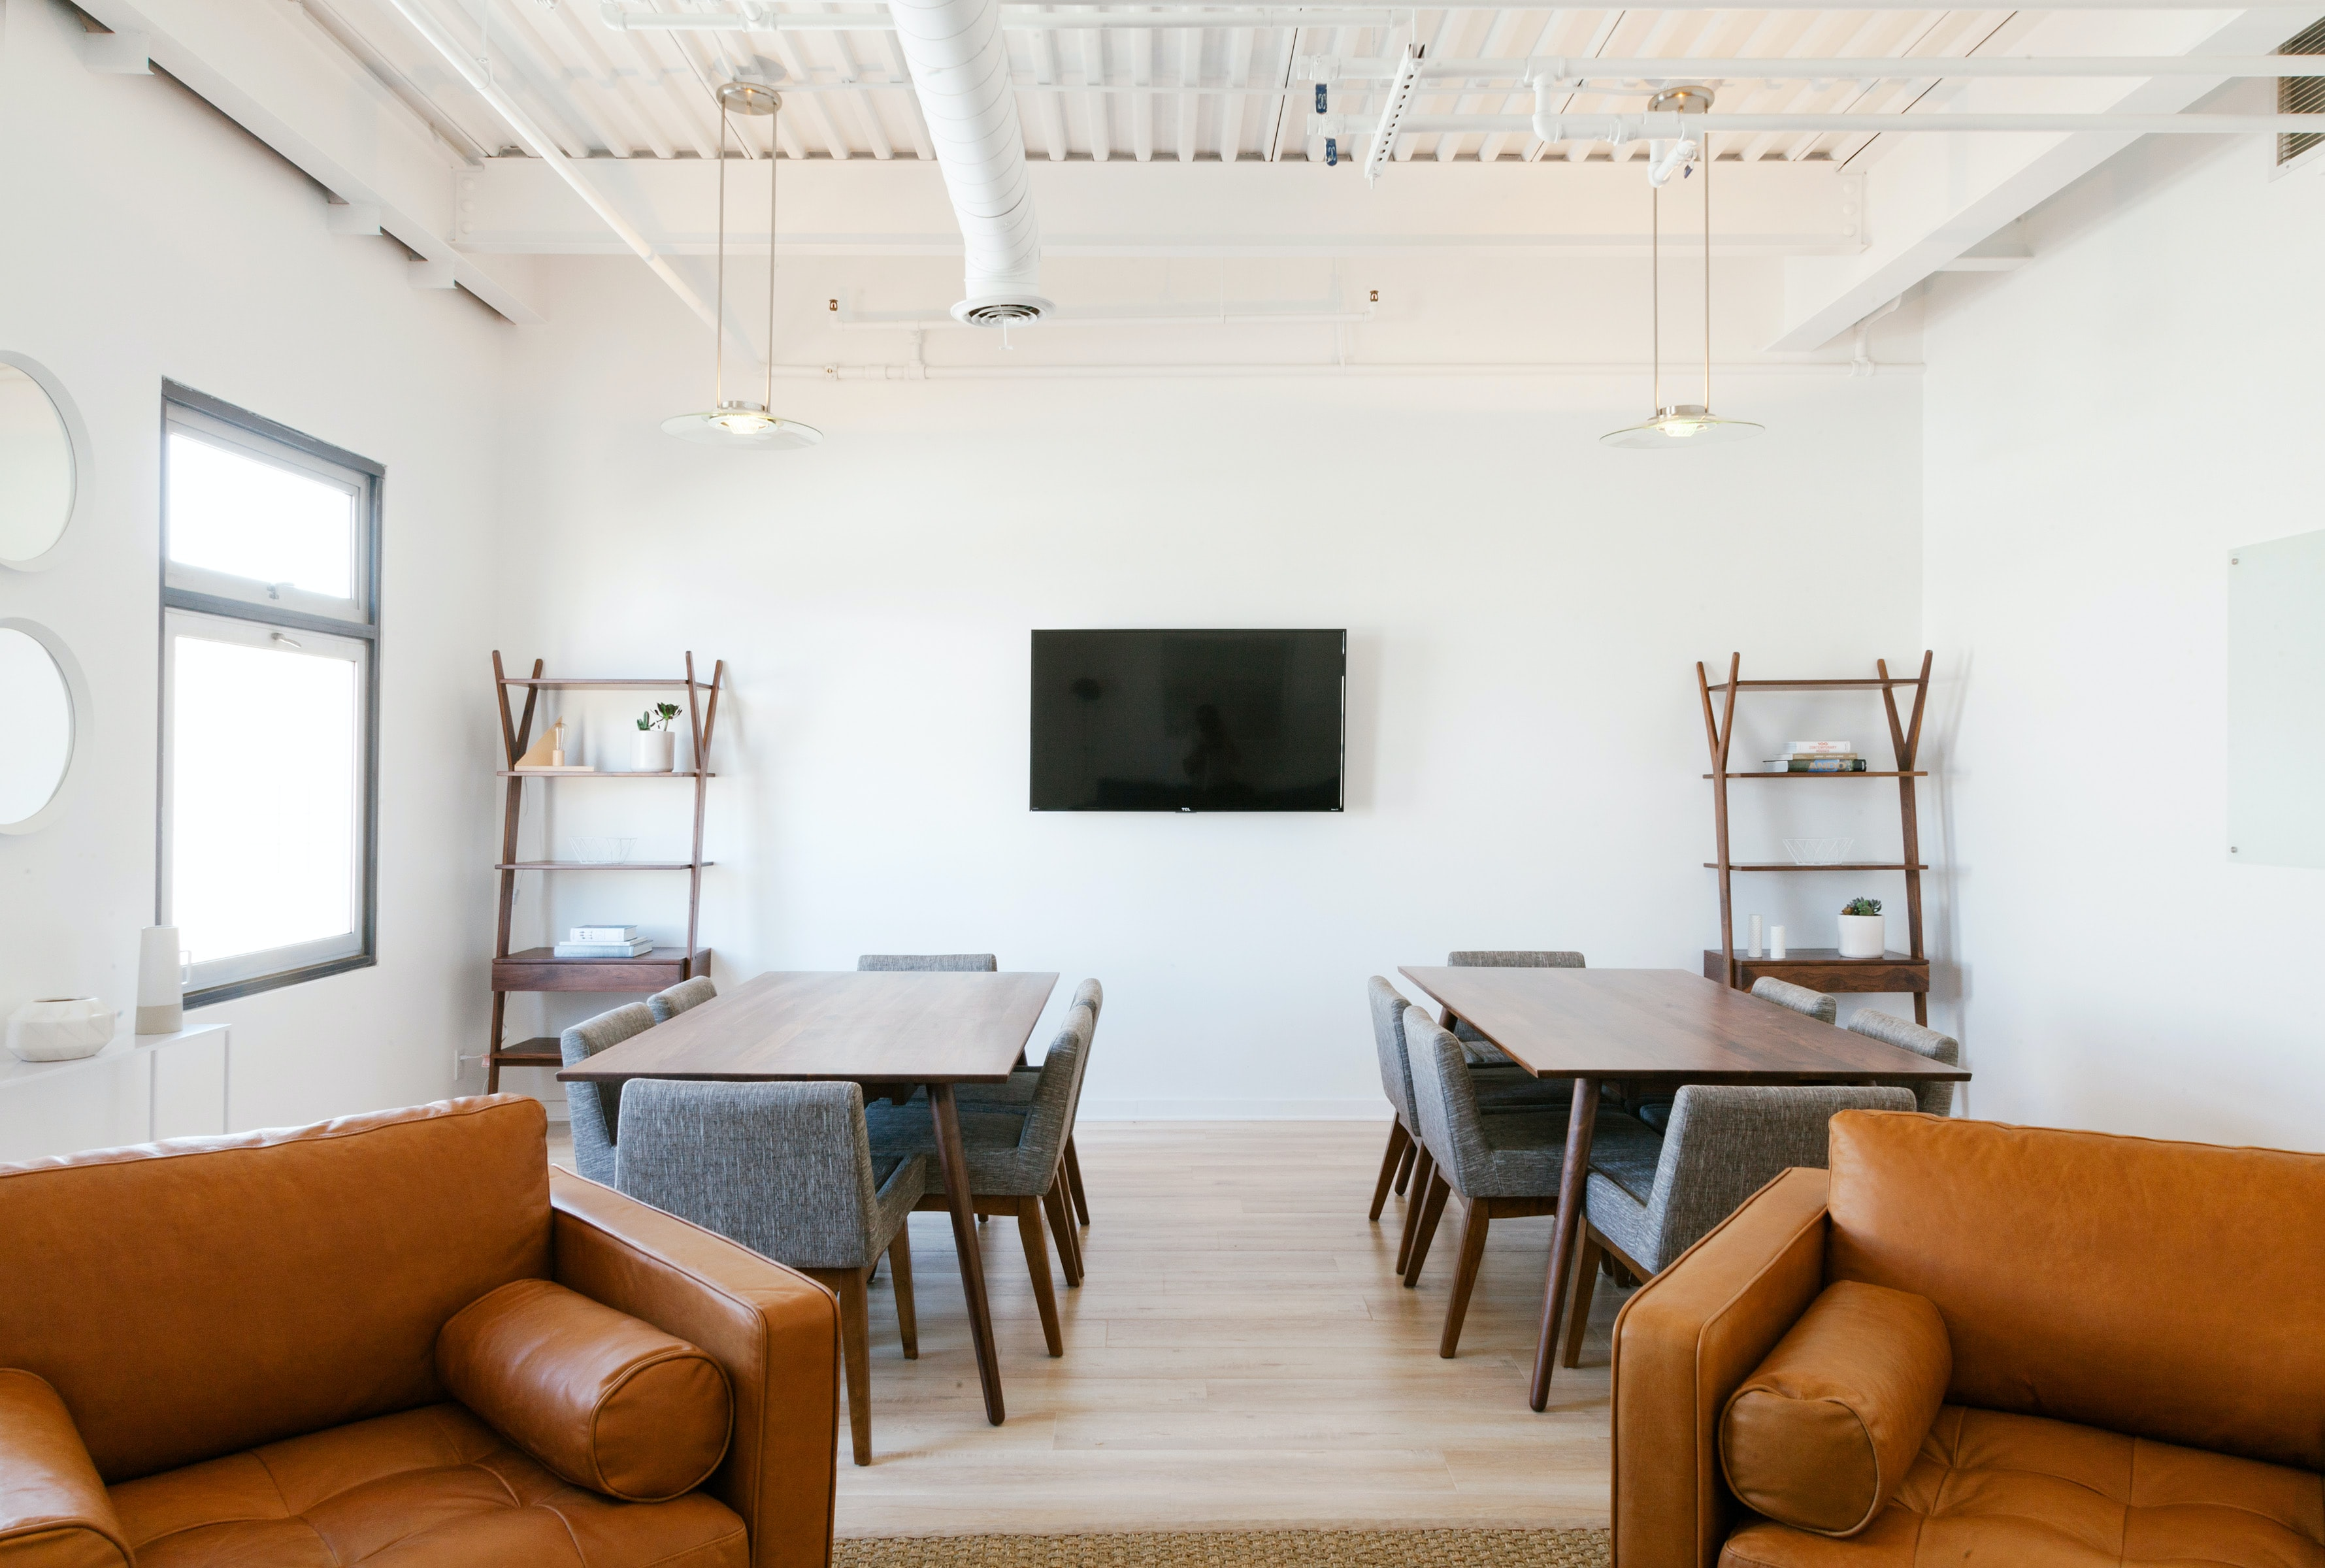 Two leather armchairs and two tables in a meeting room with a television